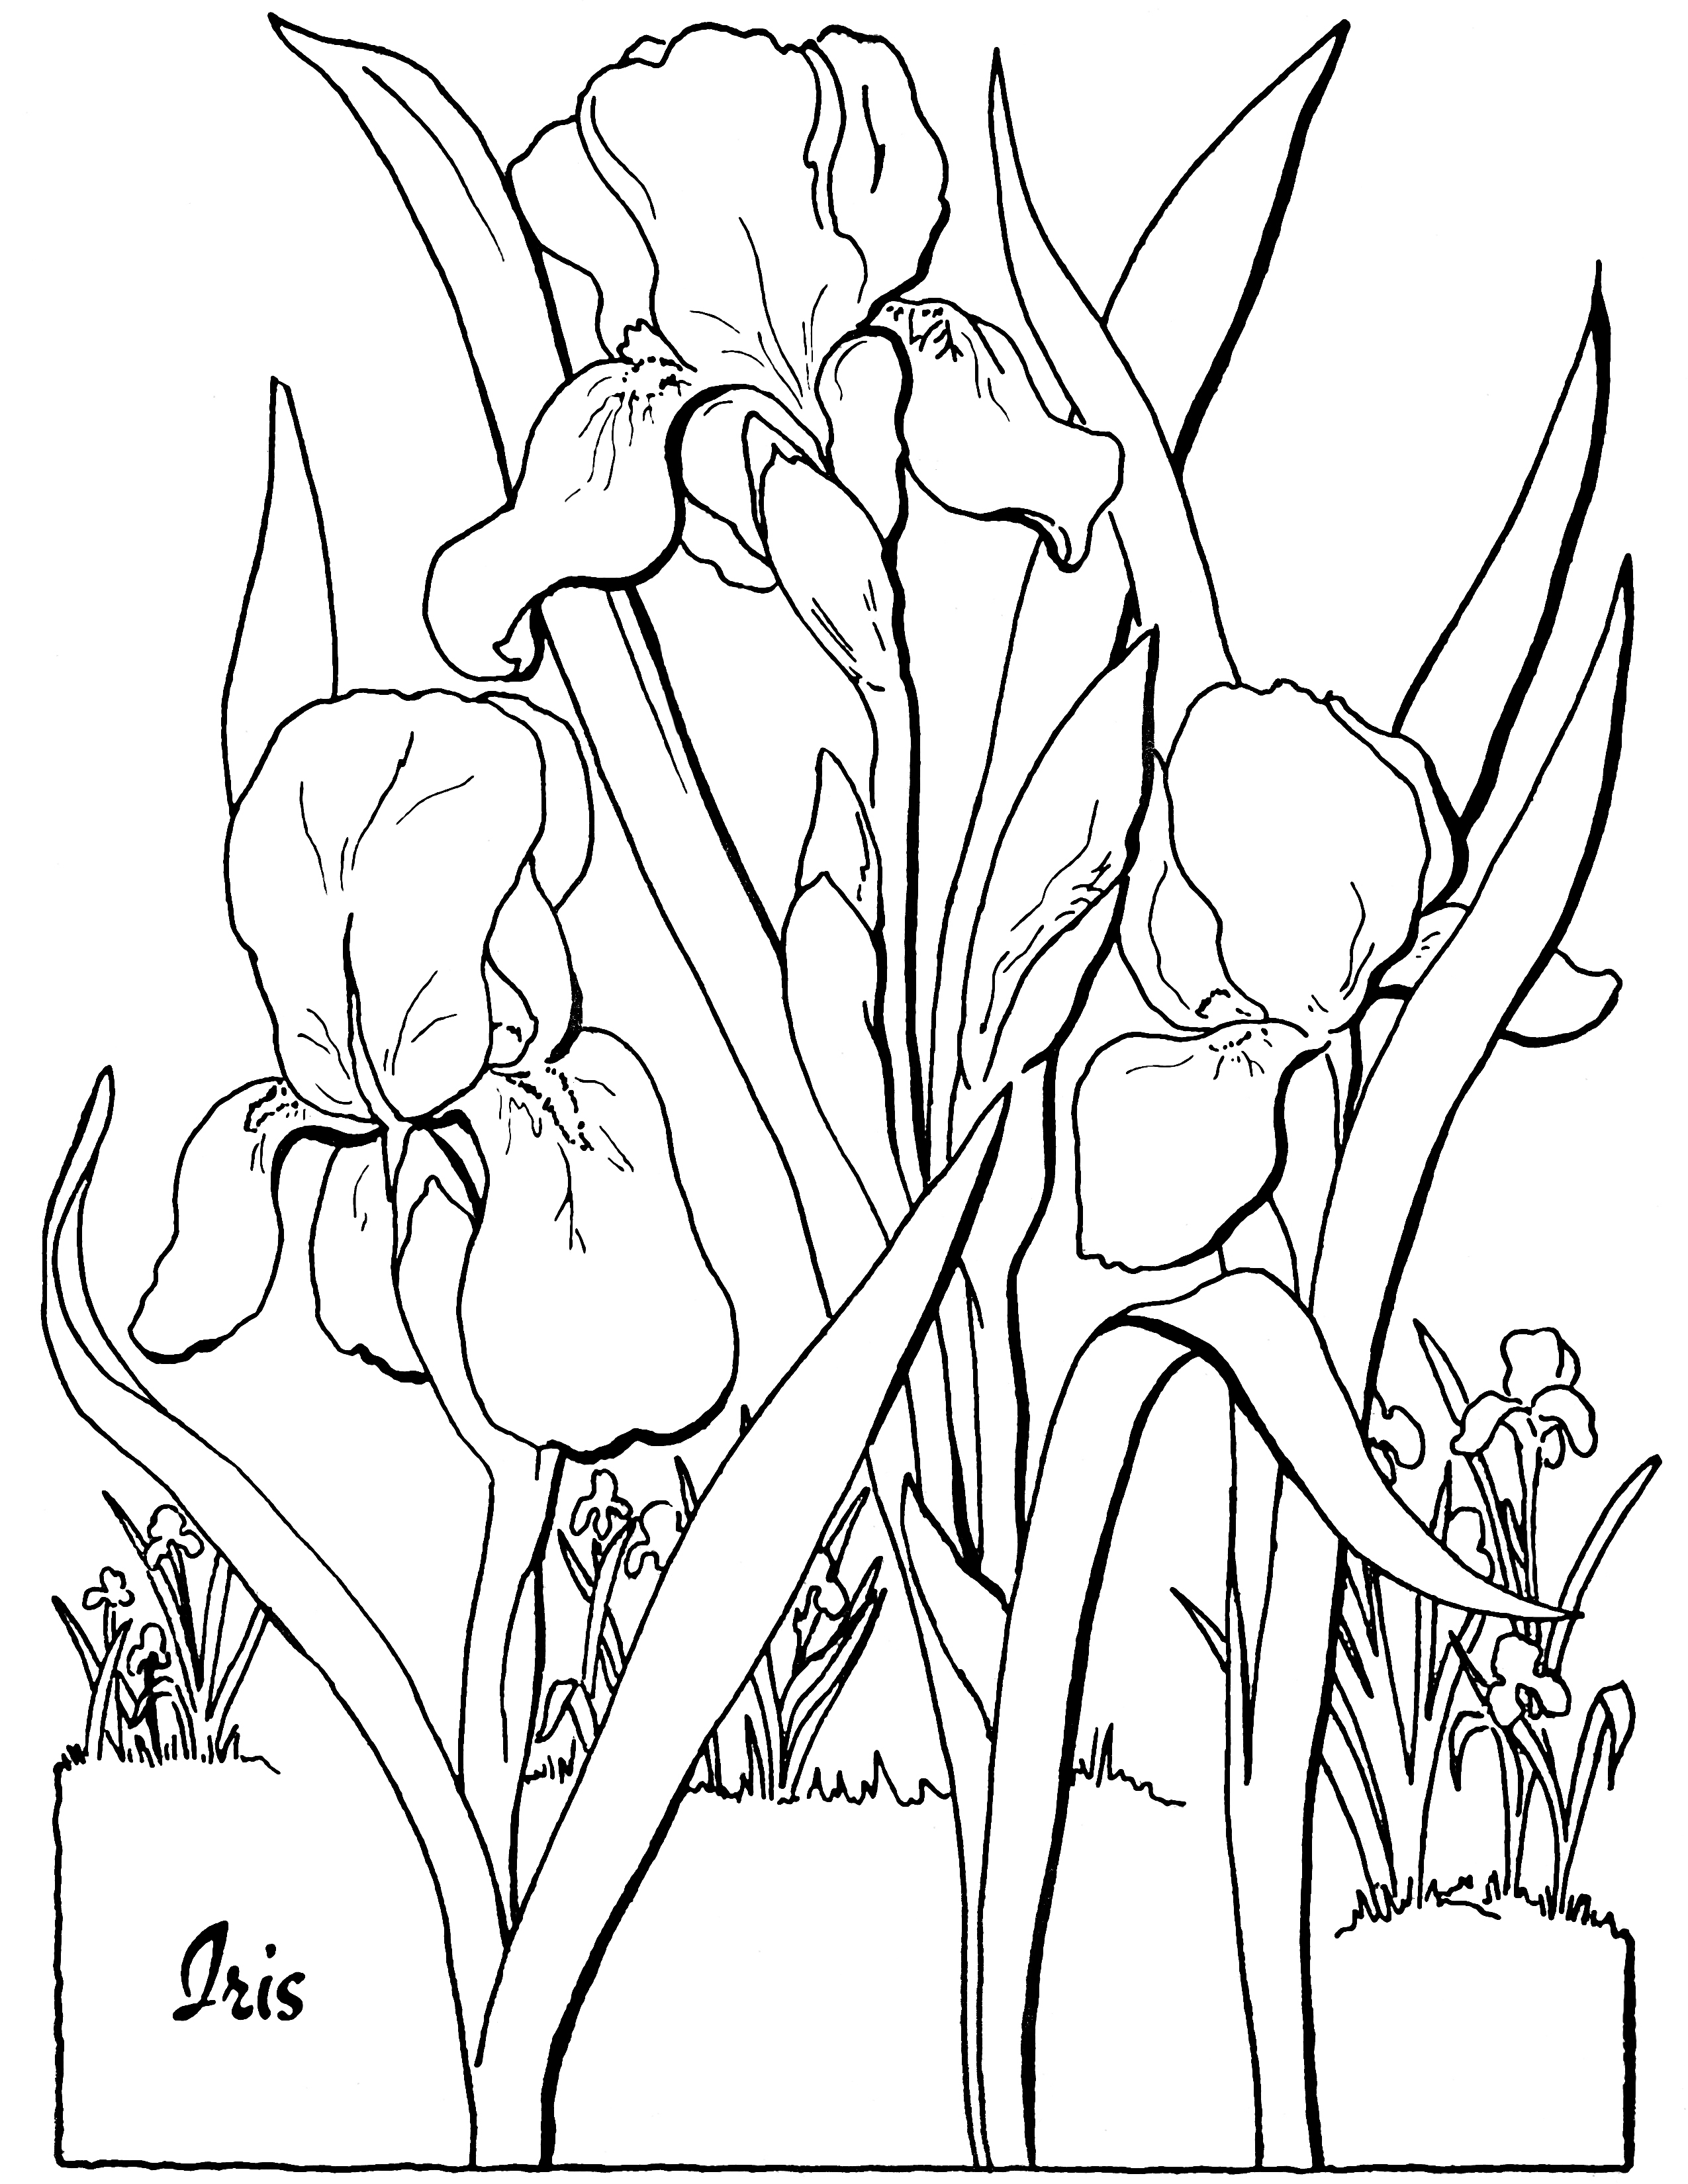 coloring flowers for adults get the coloring page flowers 50 printable adult adults flowers for coloring